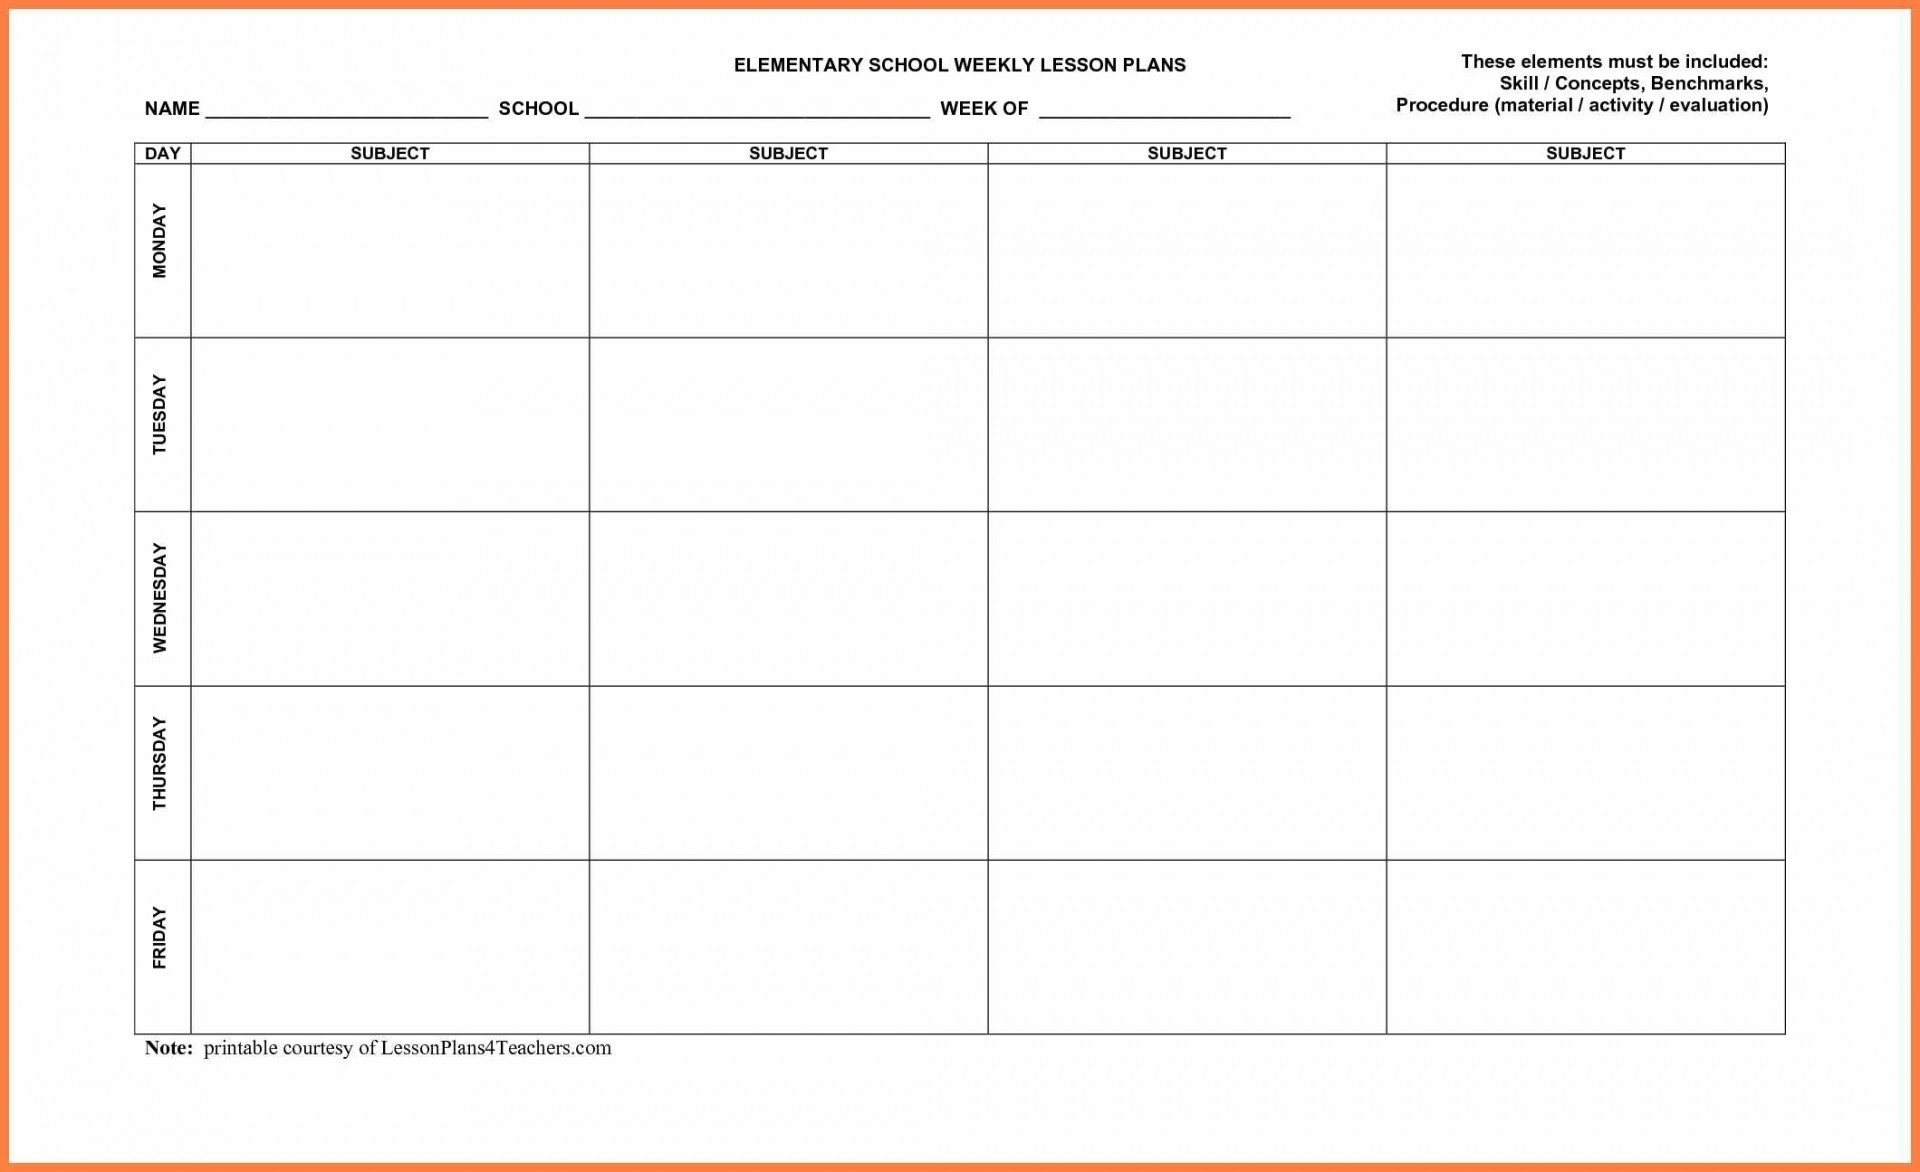 Phenomenal Blank Lesson Plan Template Pdf Templates Daily-Weekly Lesson Plan Blank Template